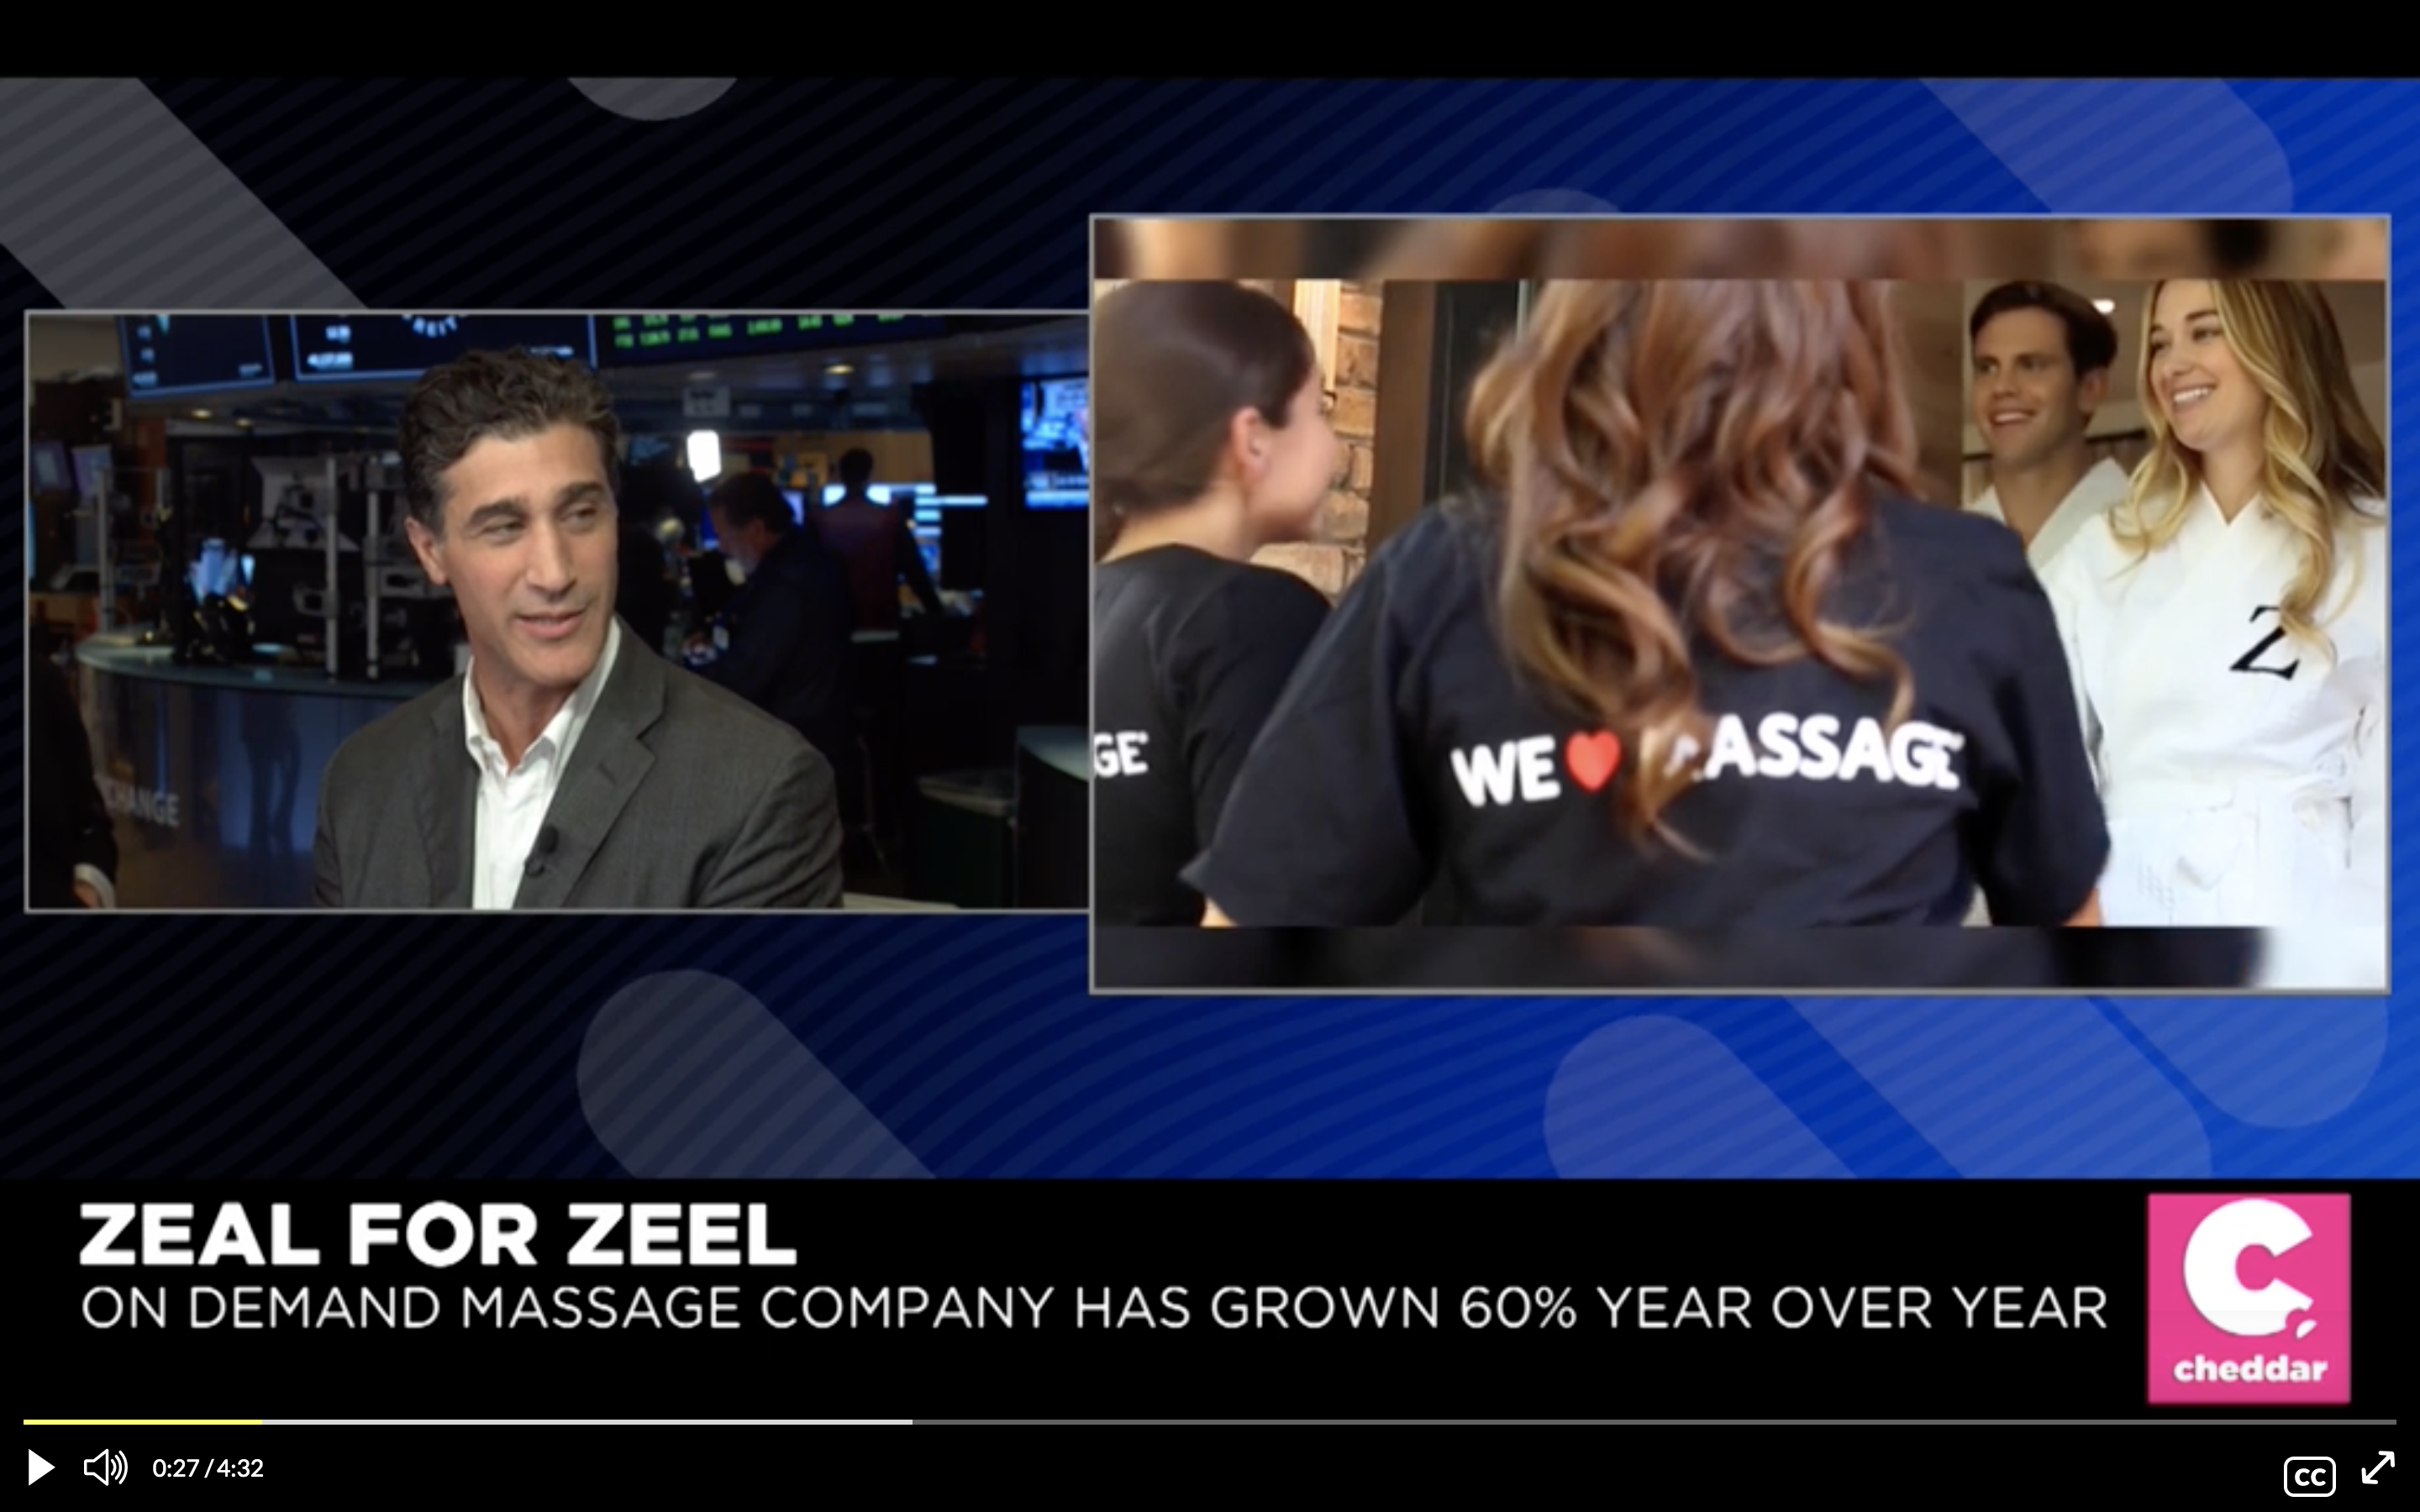 On Demand Massage Provider Zeel Seeing 60% Growth Year-Over-Year